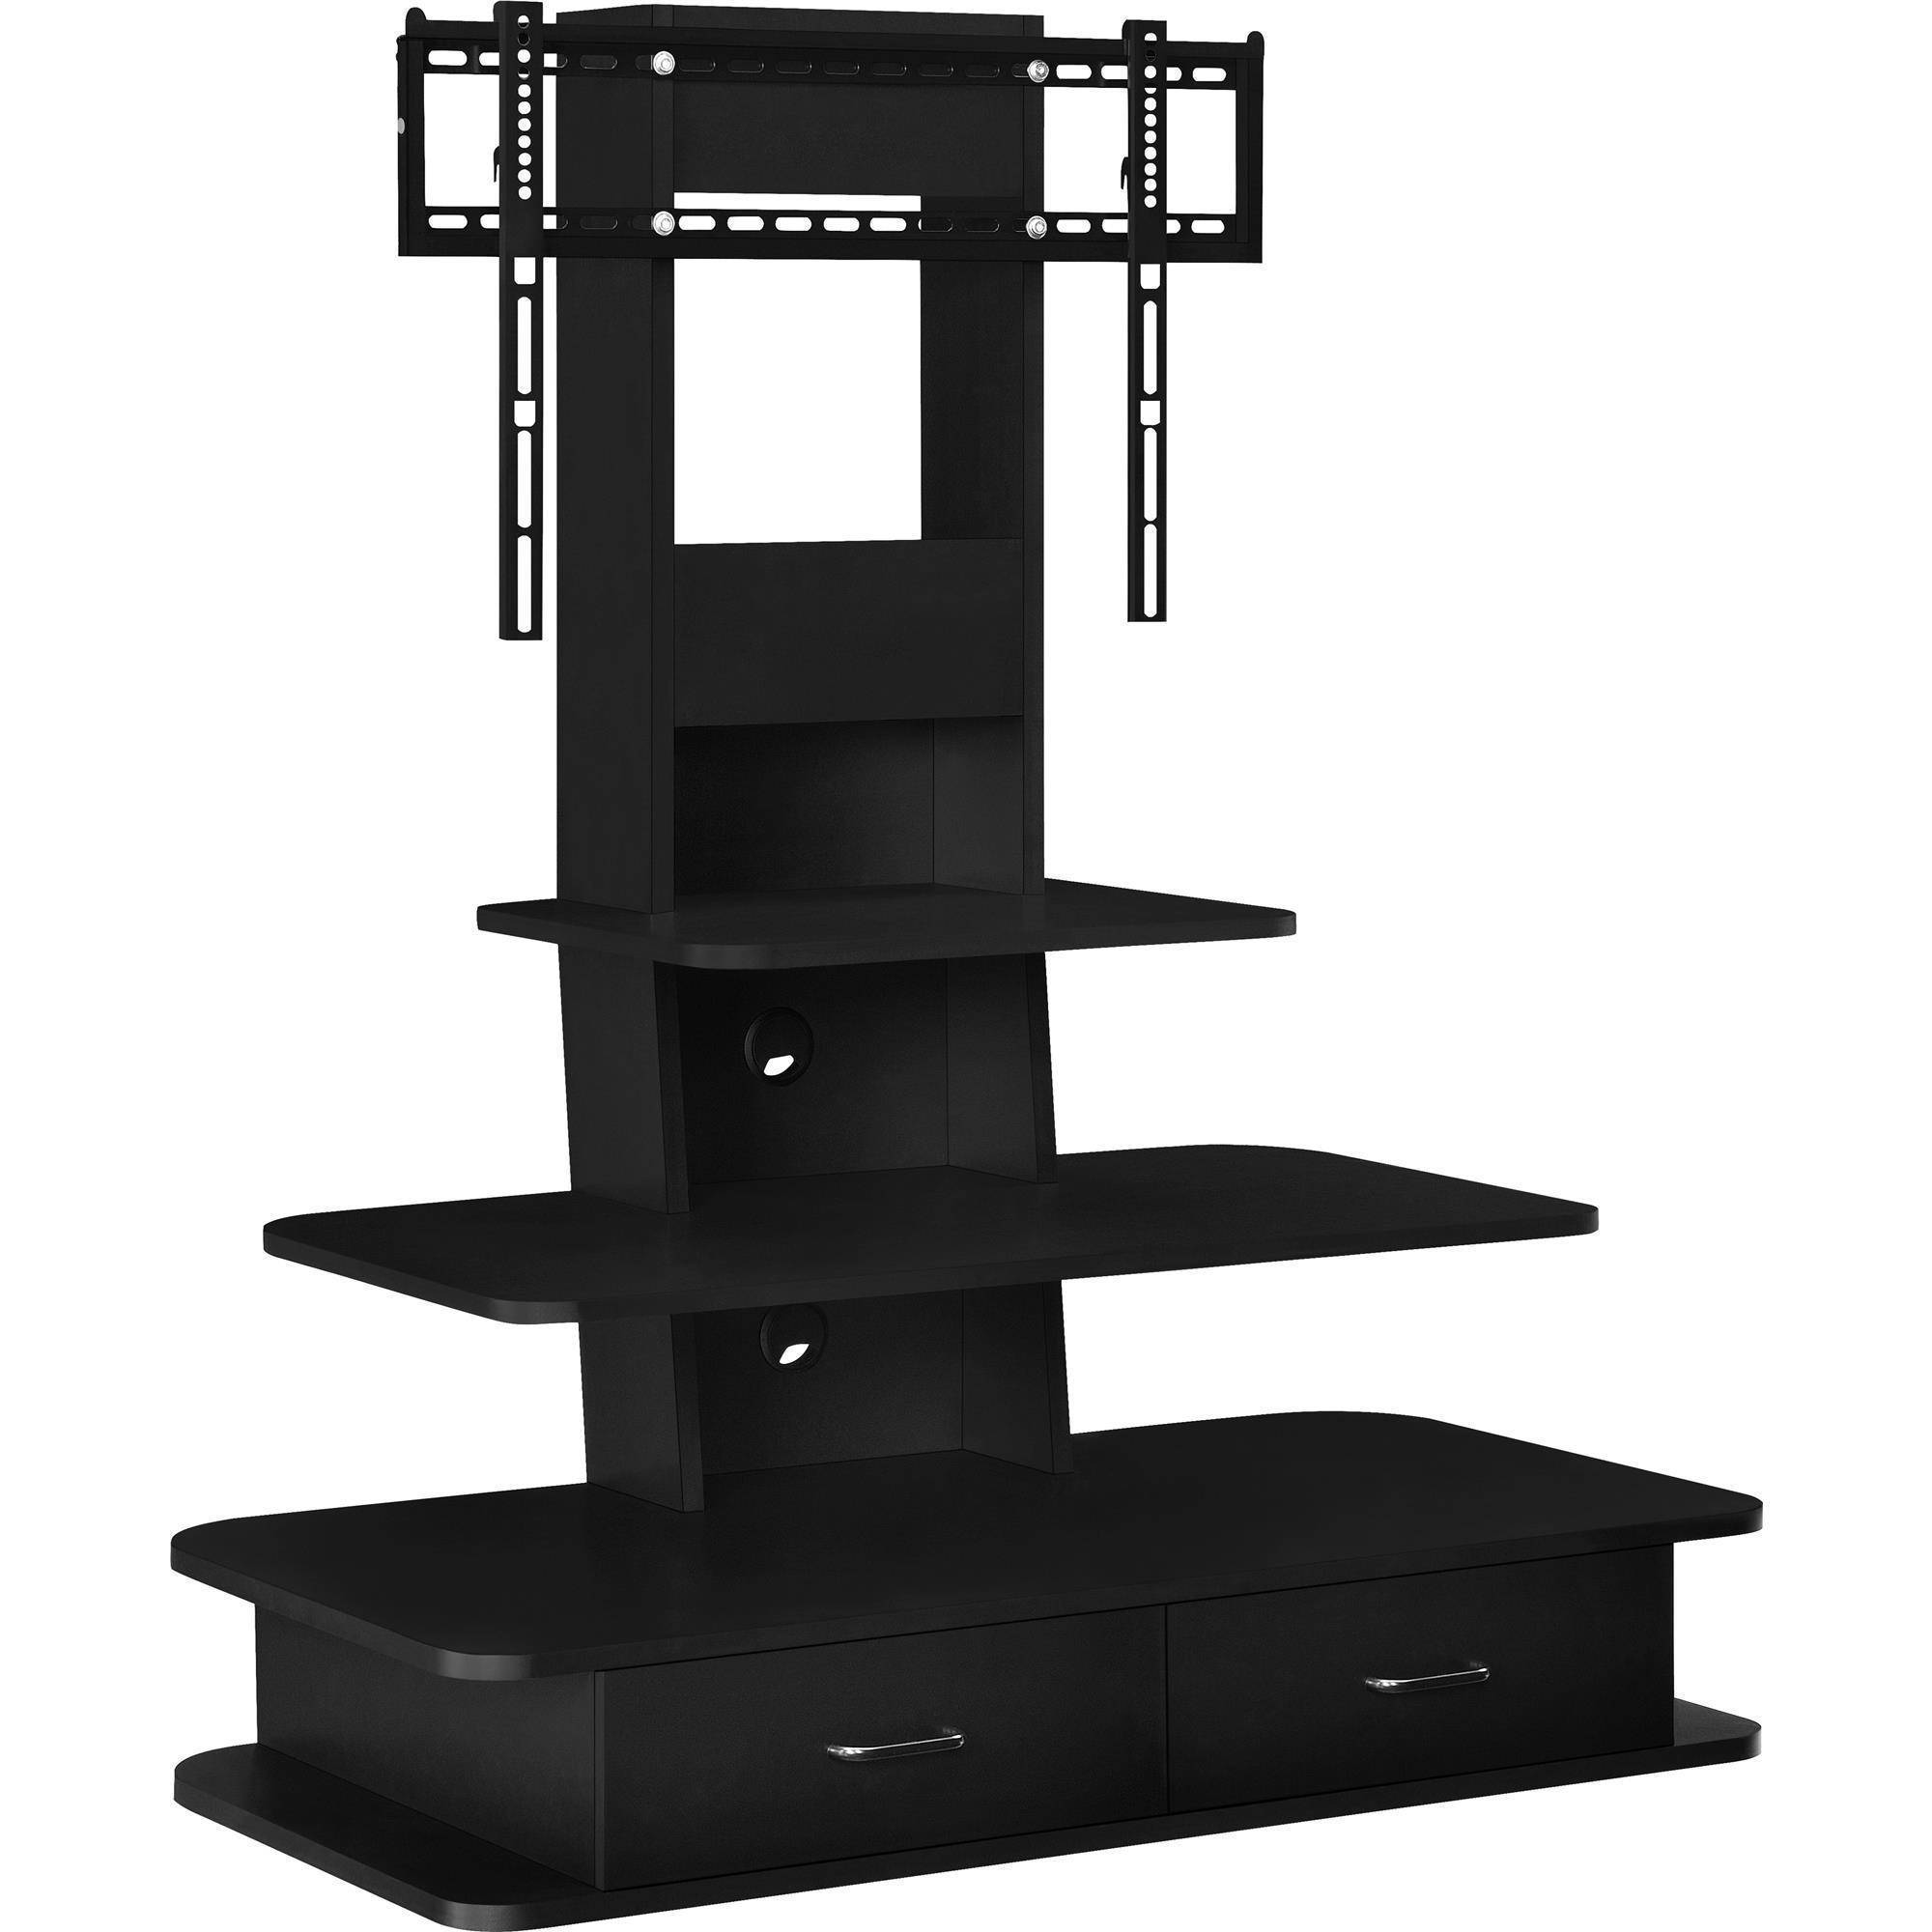 jahnke design best tvrack glasmetall tv schwarz metall beautiful with rack amazing glas great